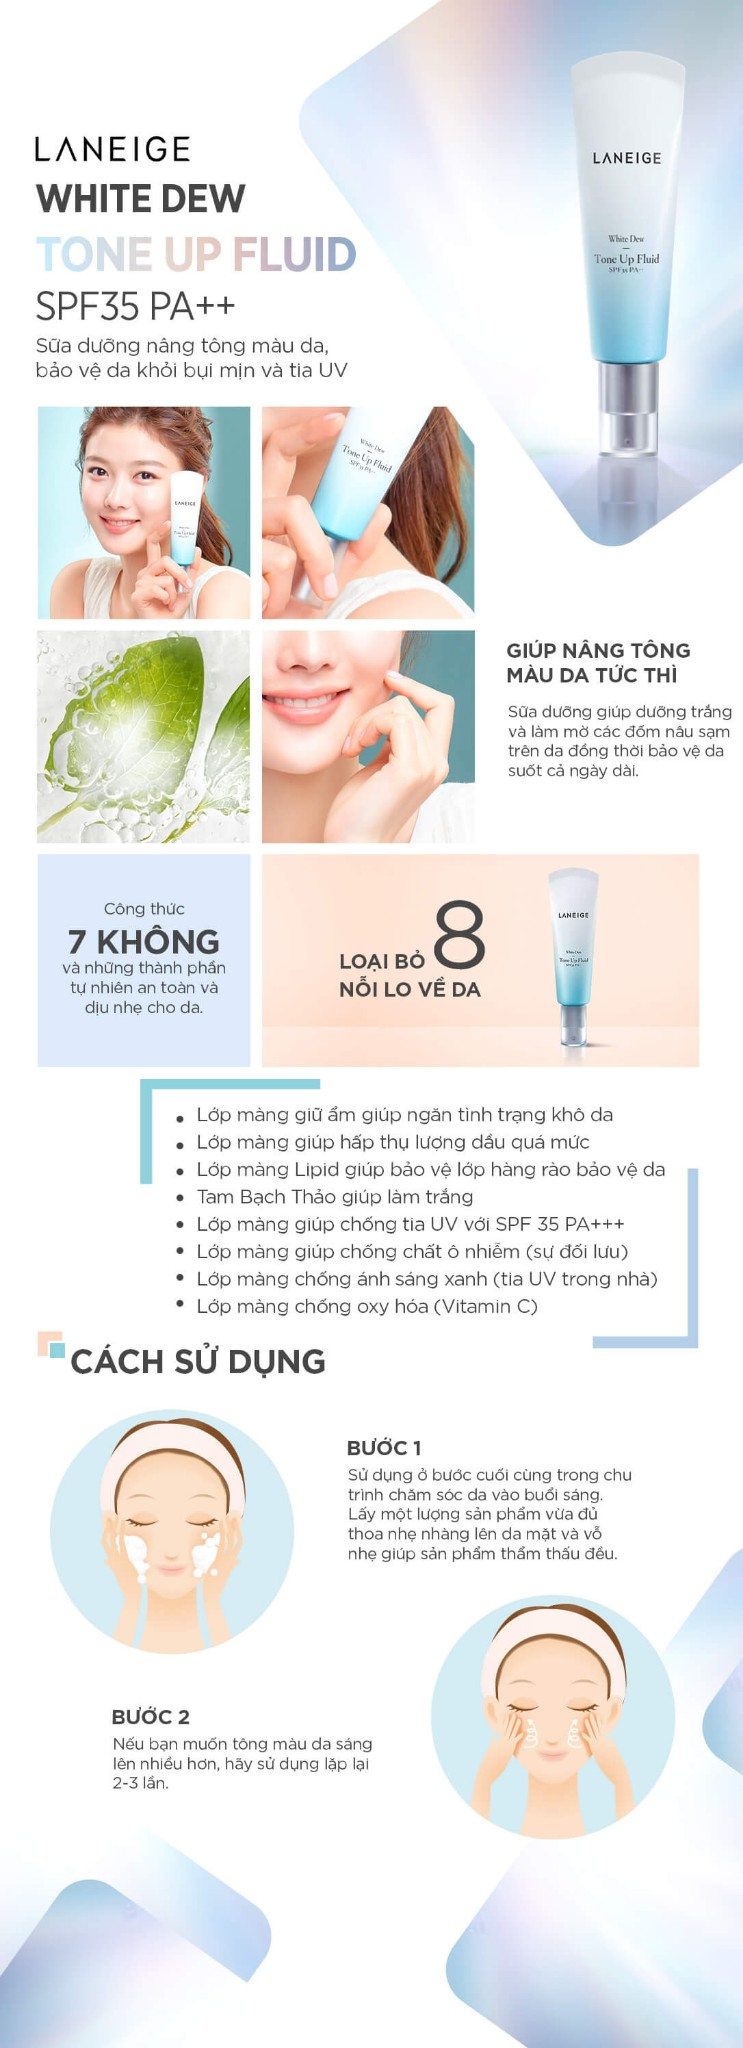 Laneige White Dew Tone Up Fluid SPF35 PA++ 50ml